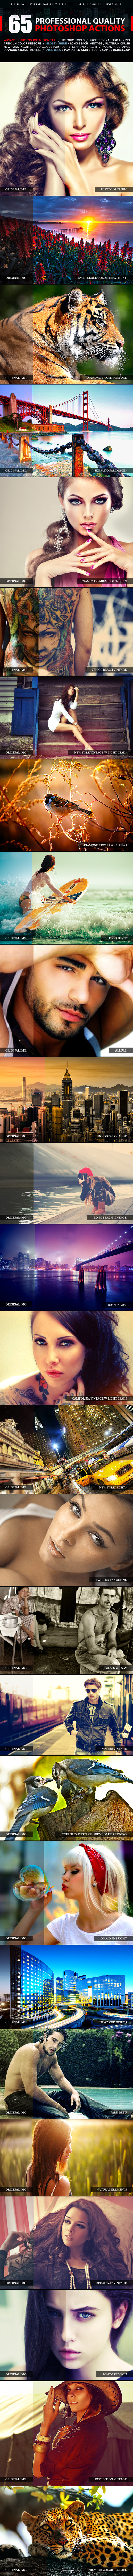 65 Professional Quality Actions - Actions Photoshop